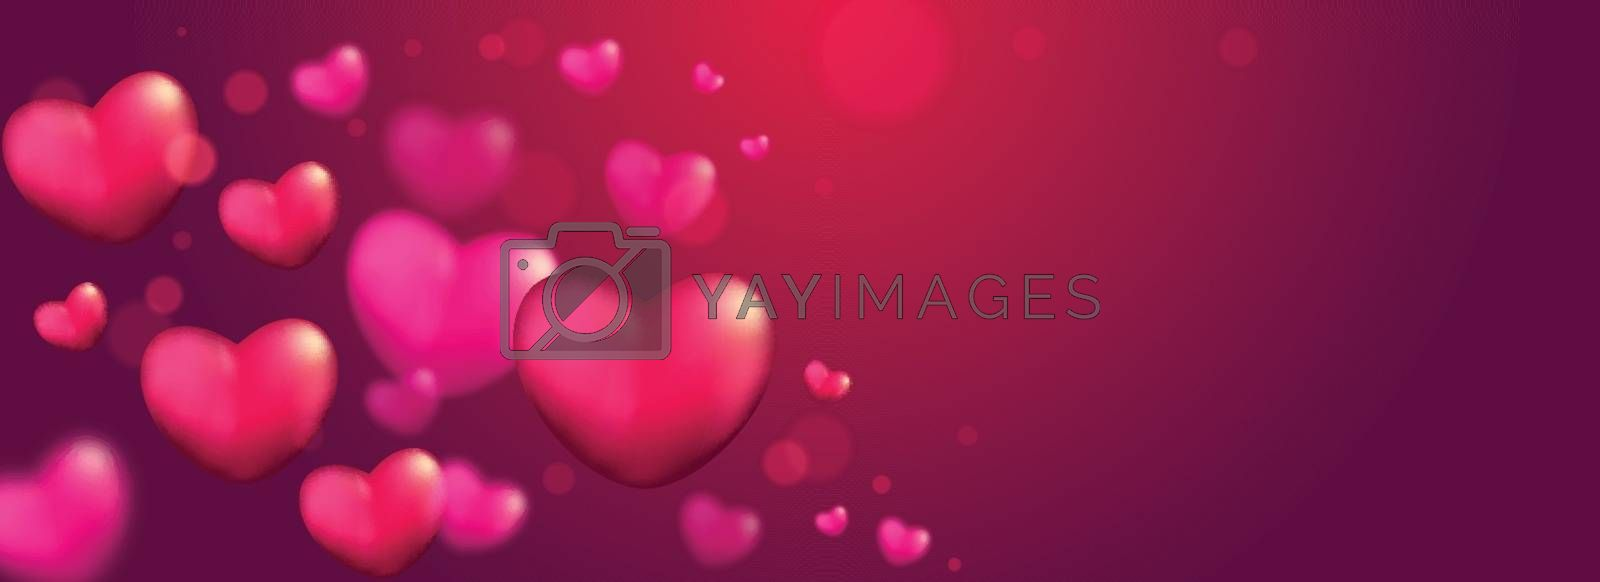 Glossy banner design with glossy heart shapes.